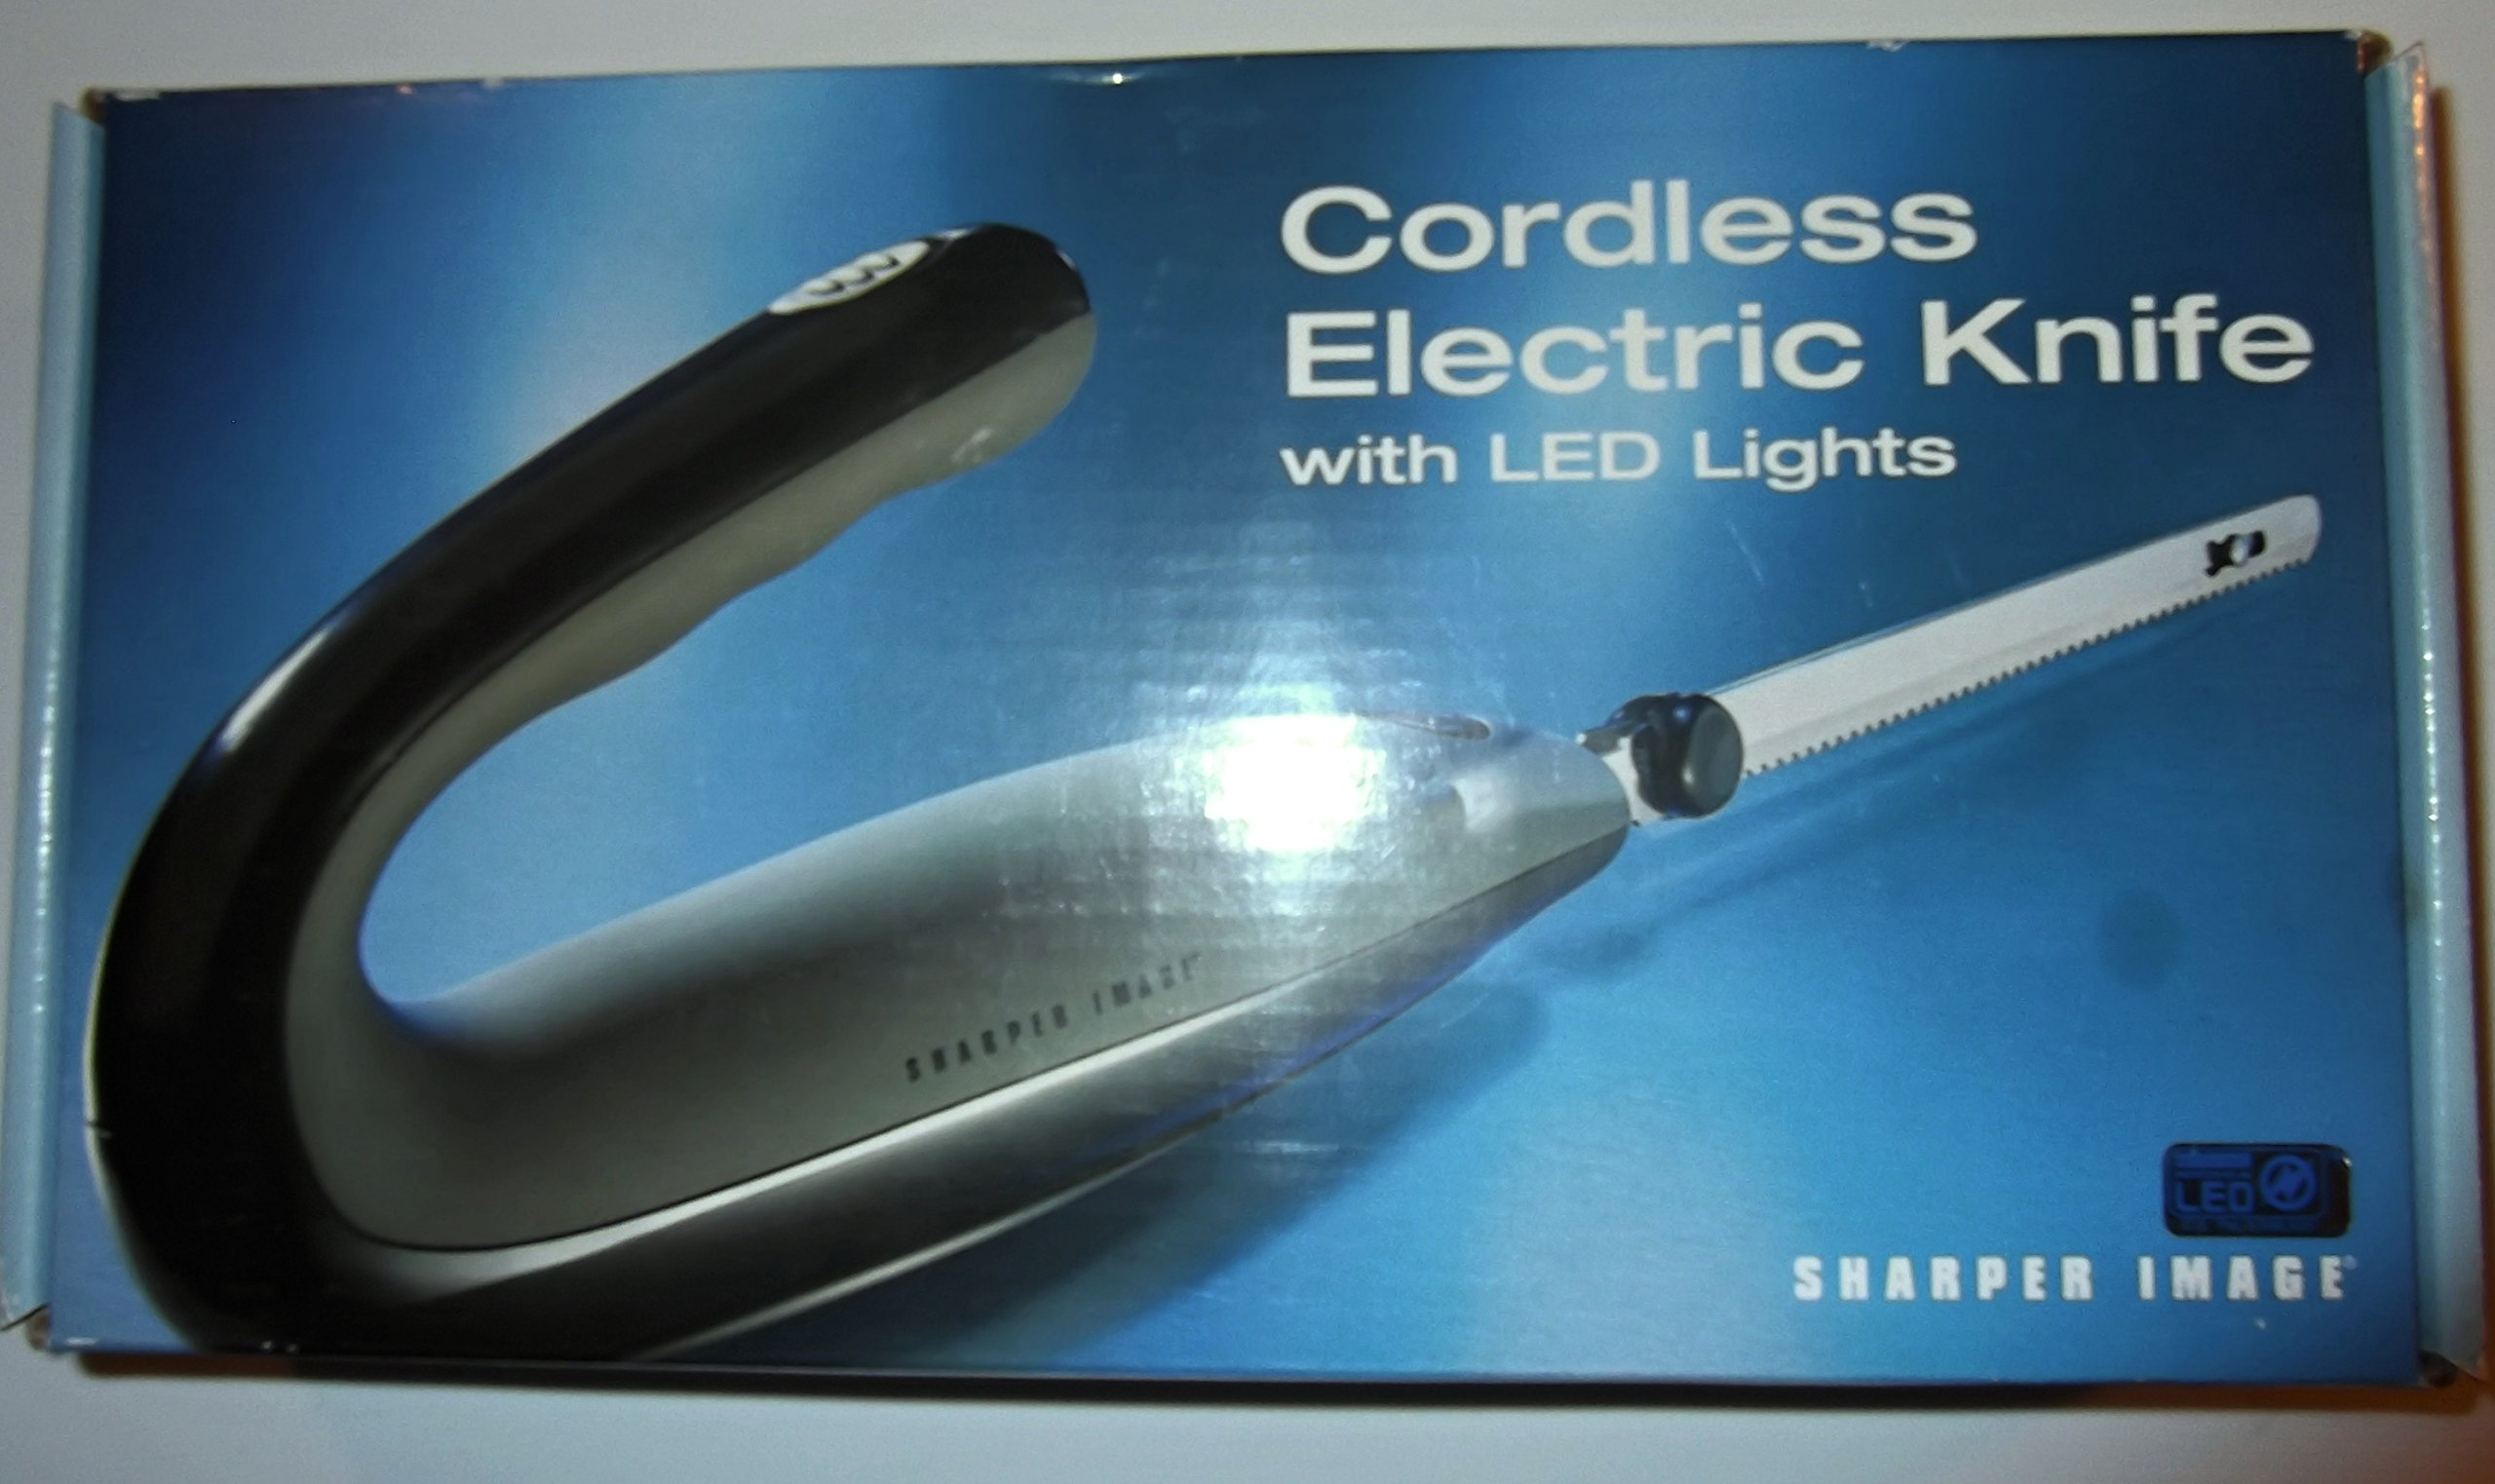 Sharper Image Cordless Electric Knife with LED Lights